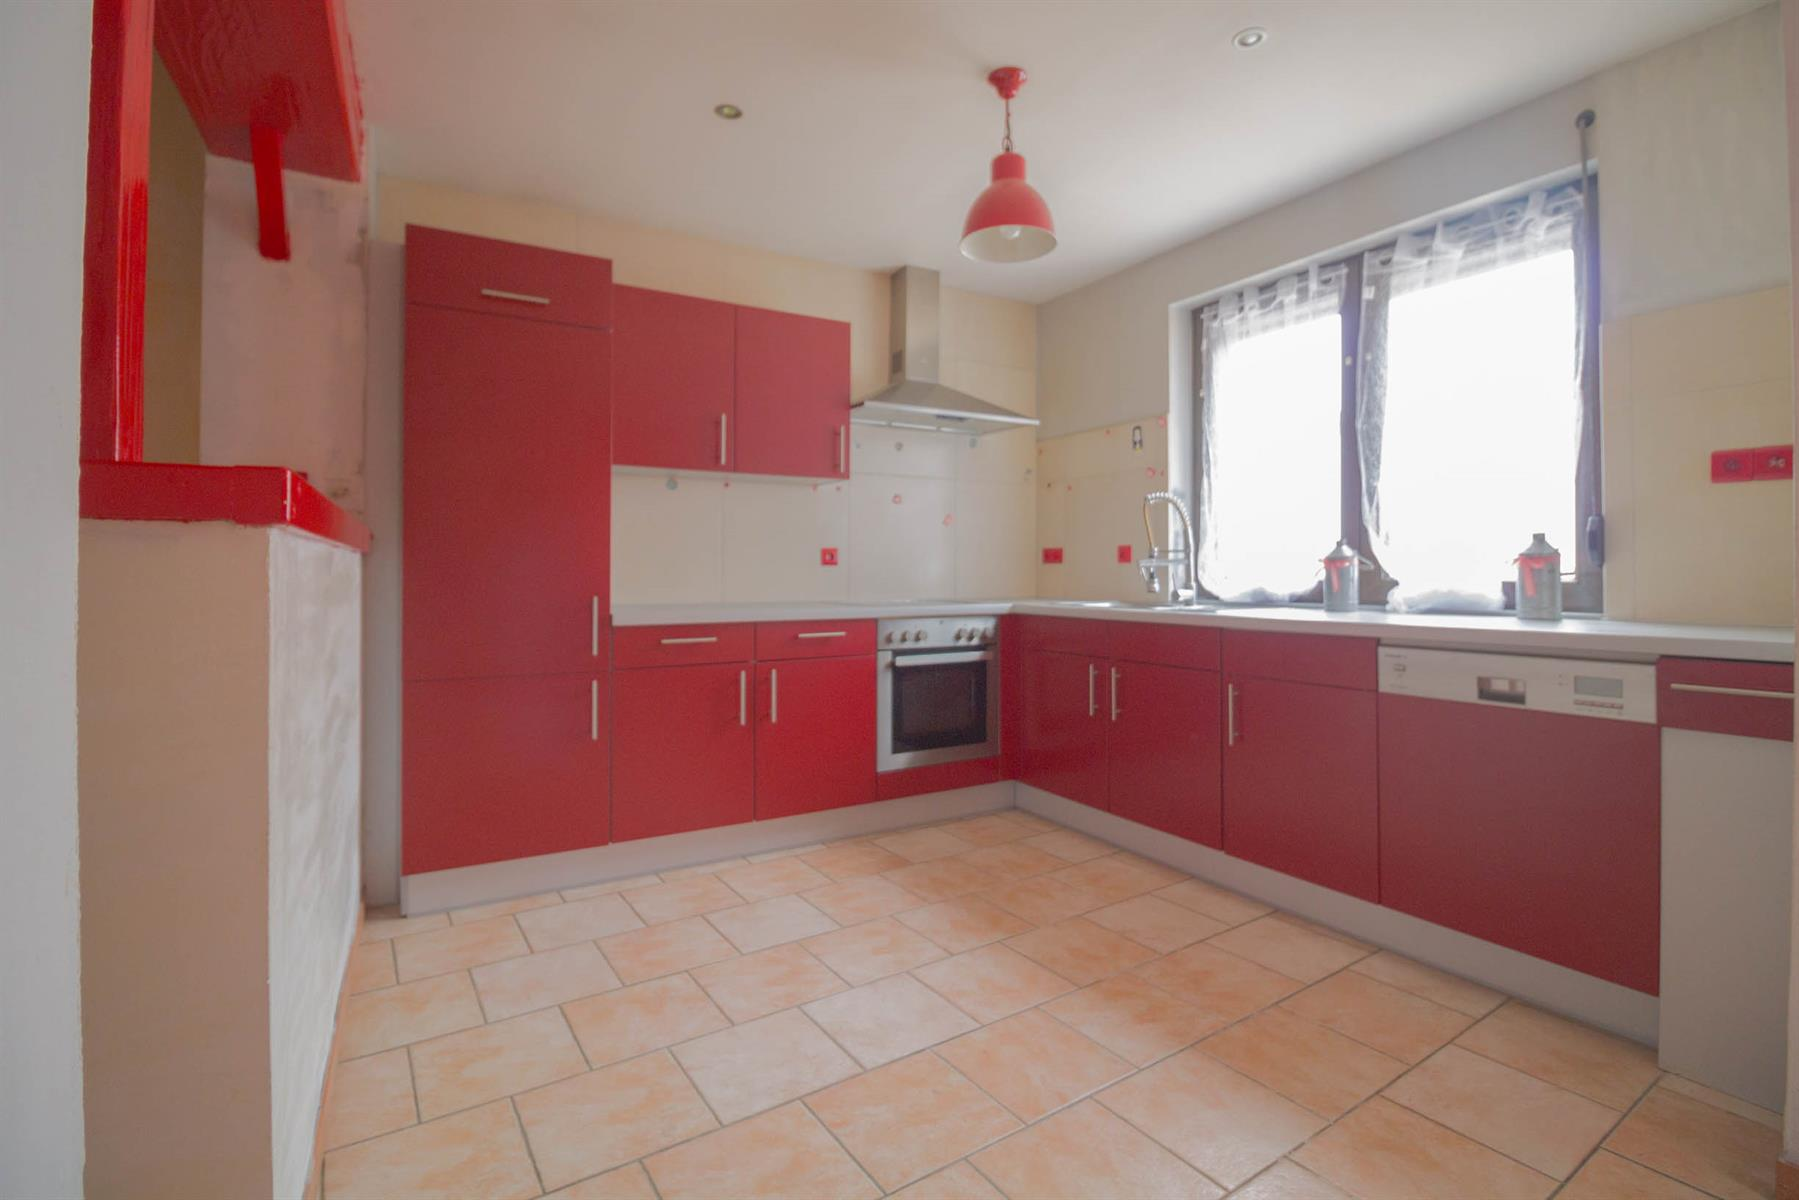 Maison - Courcelles (Trazegnies) - #4445047-8